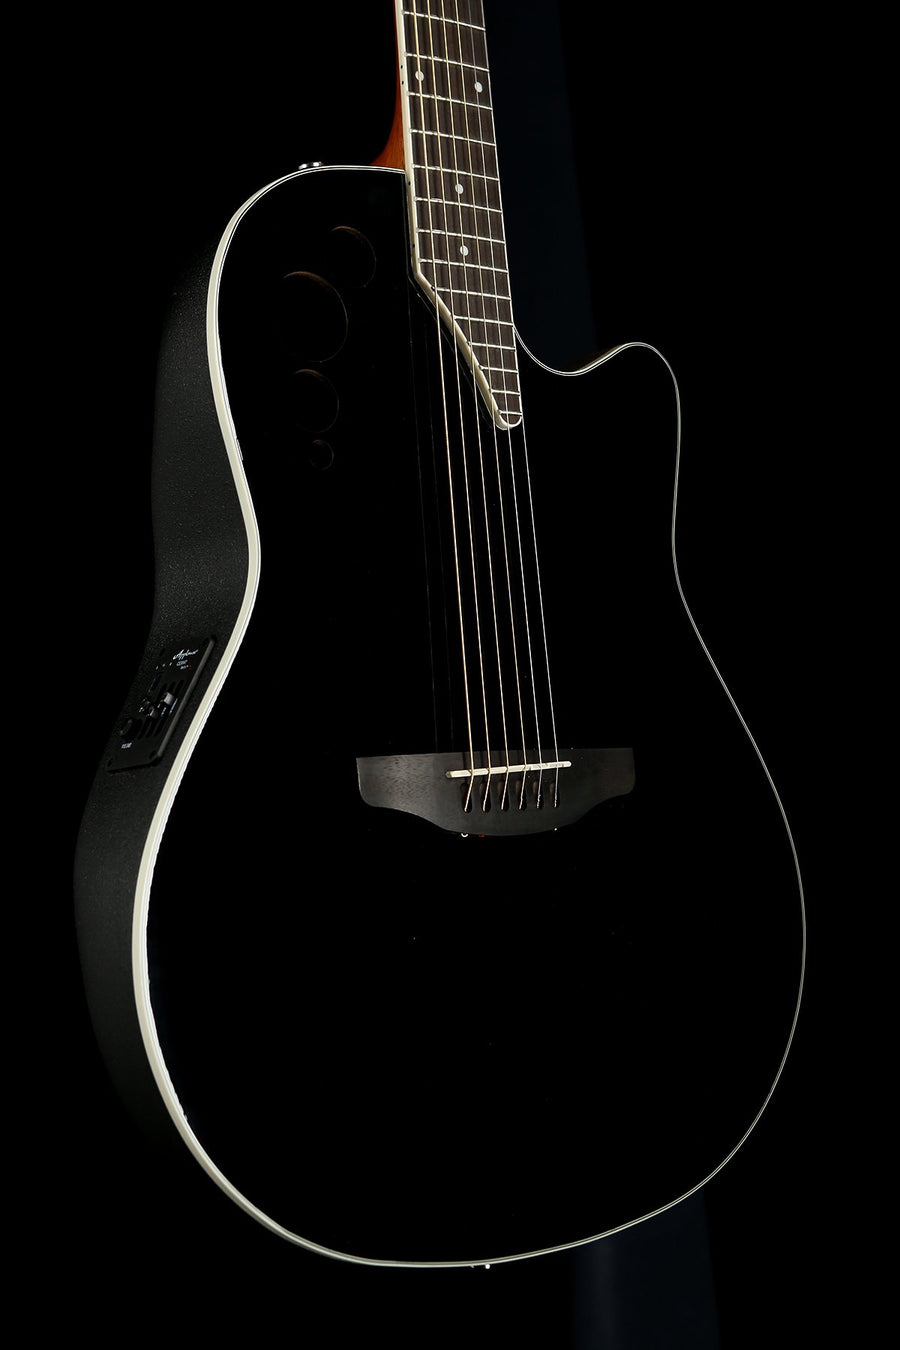 Ovation Applause Elite Black Acoustic Electric Guitar